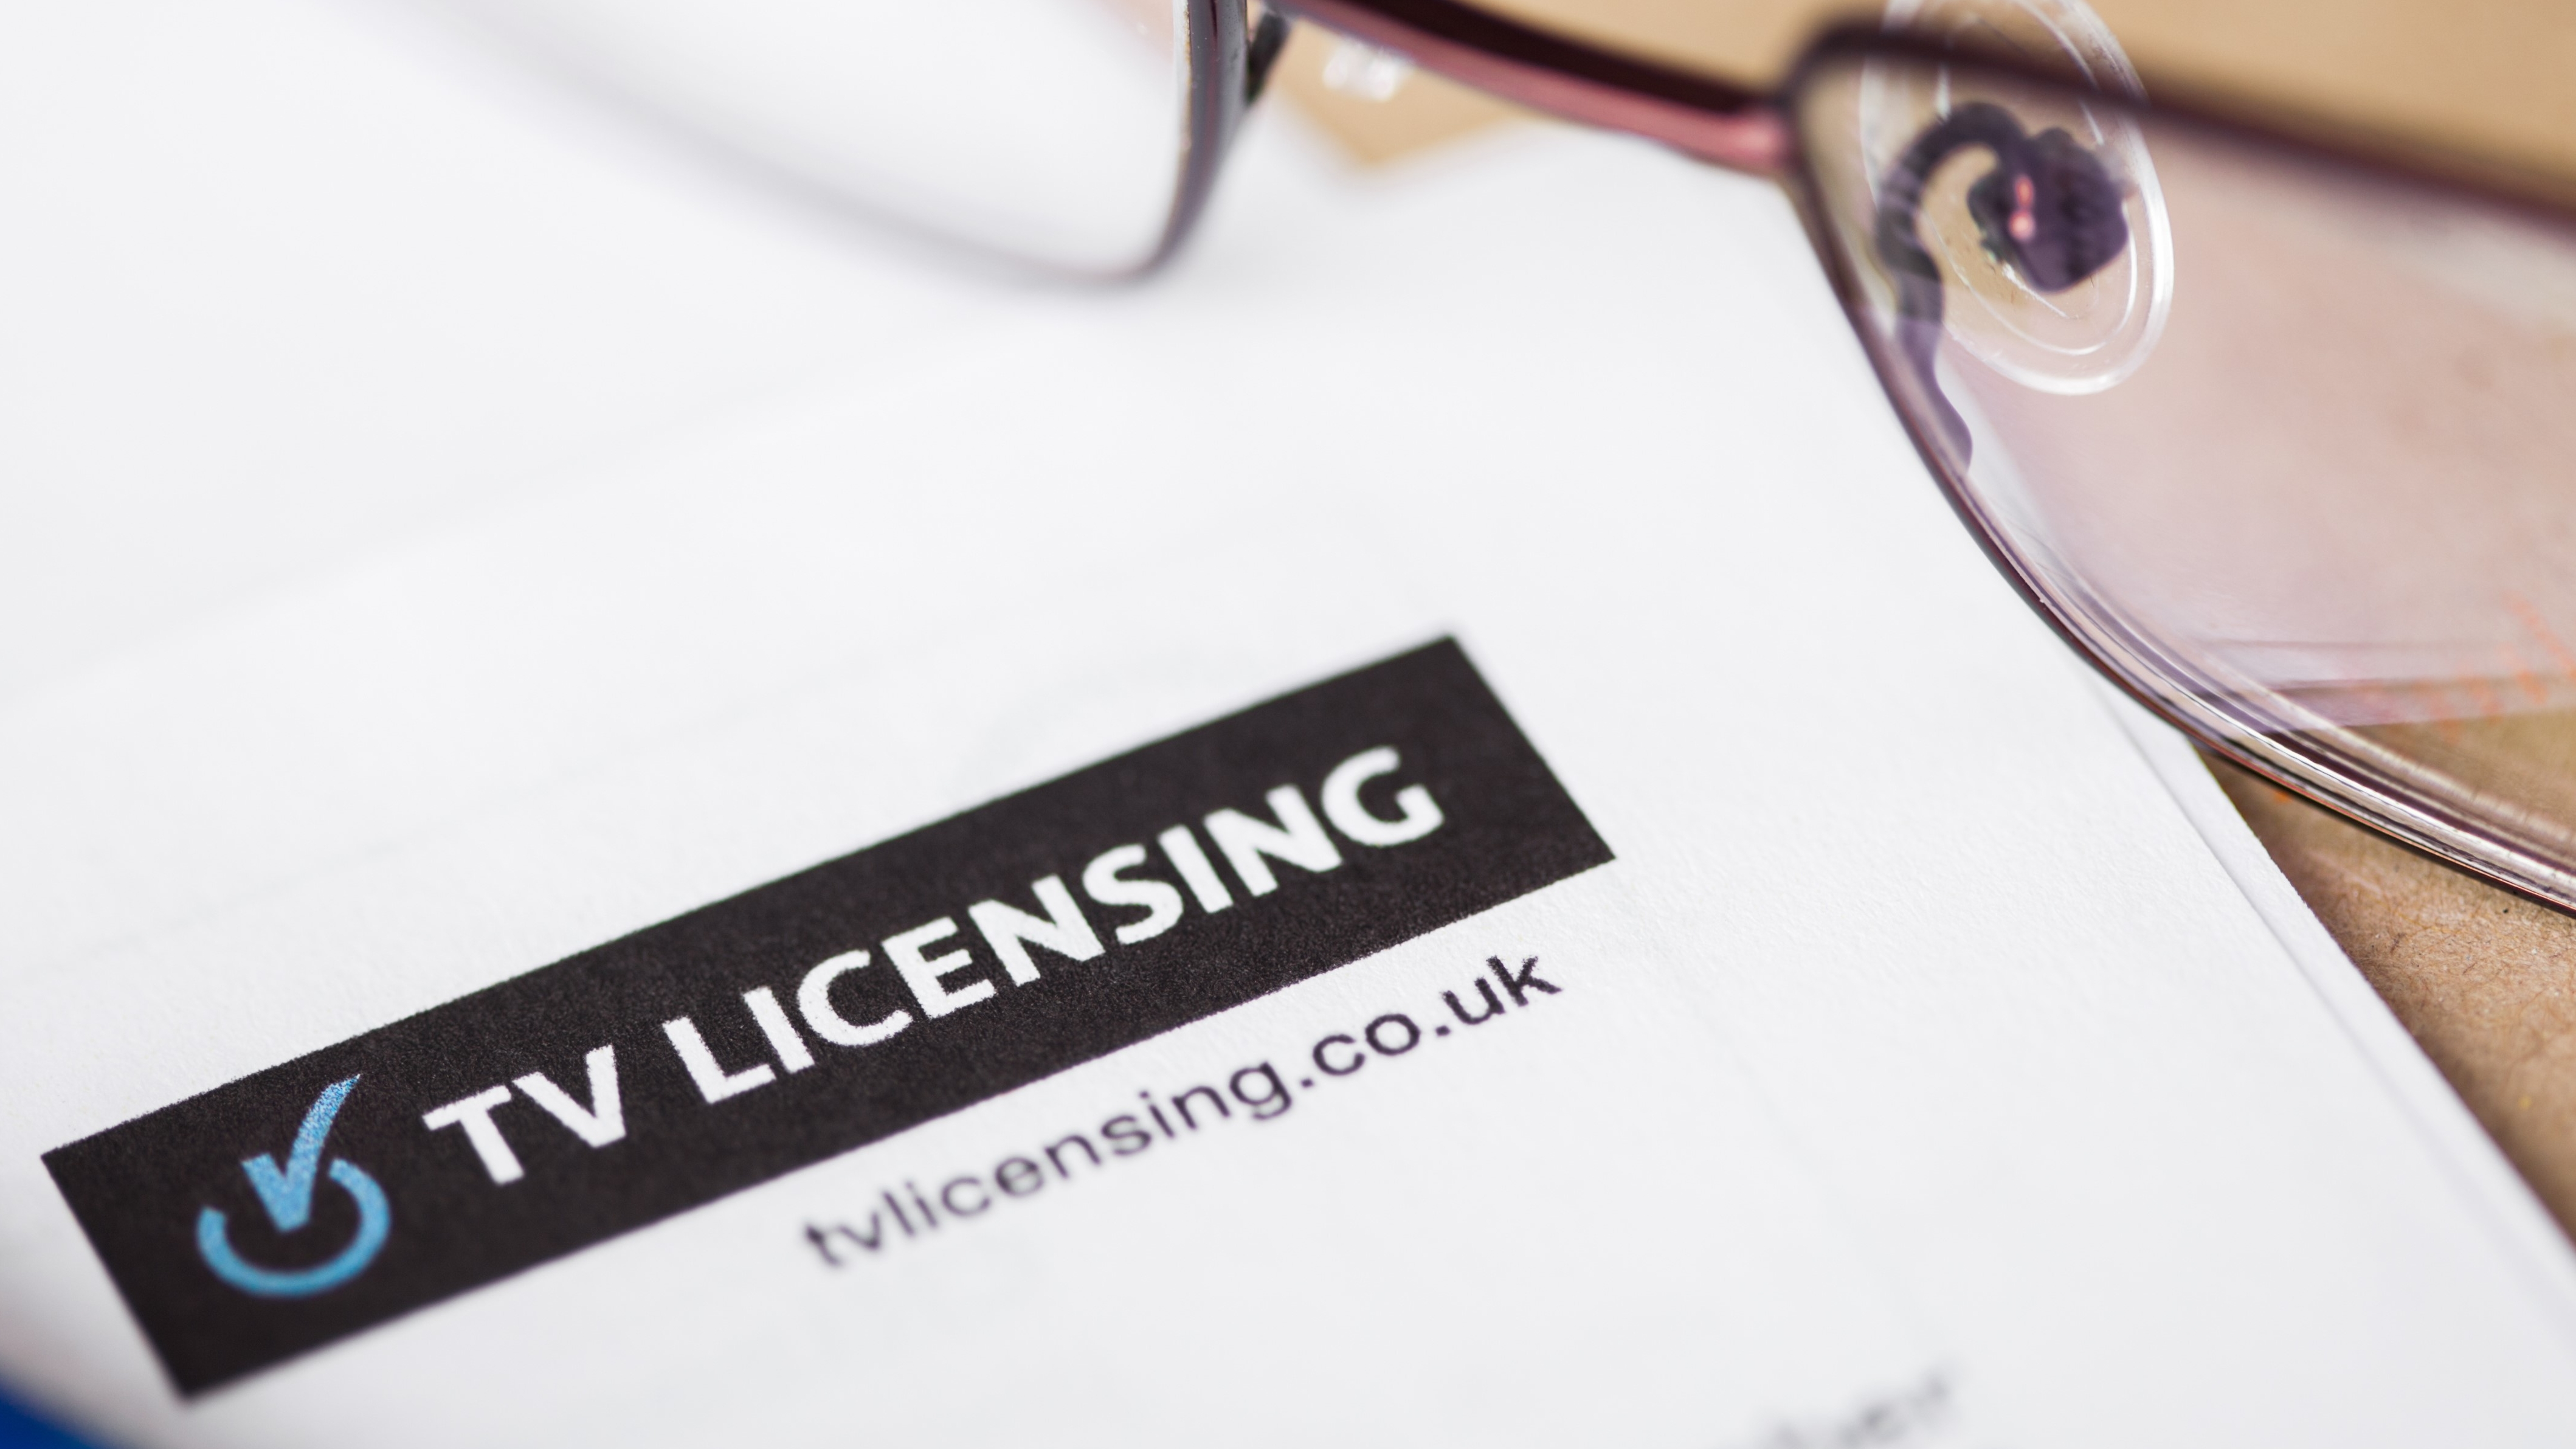 Do I need a TV licence?: 20+ TV licence fee tips - Money Saving Expert